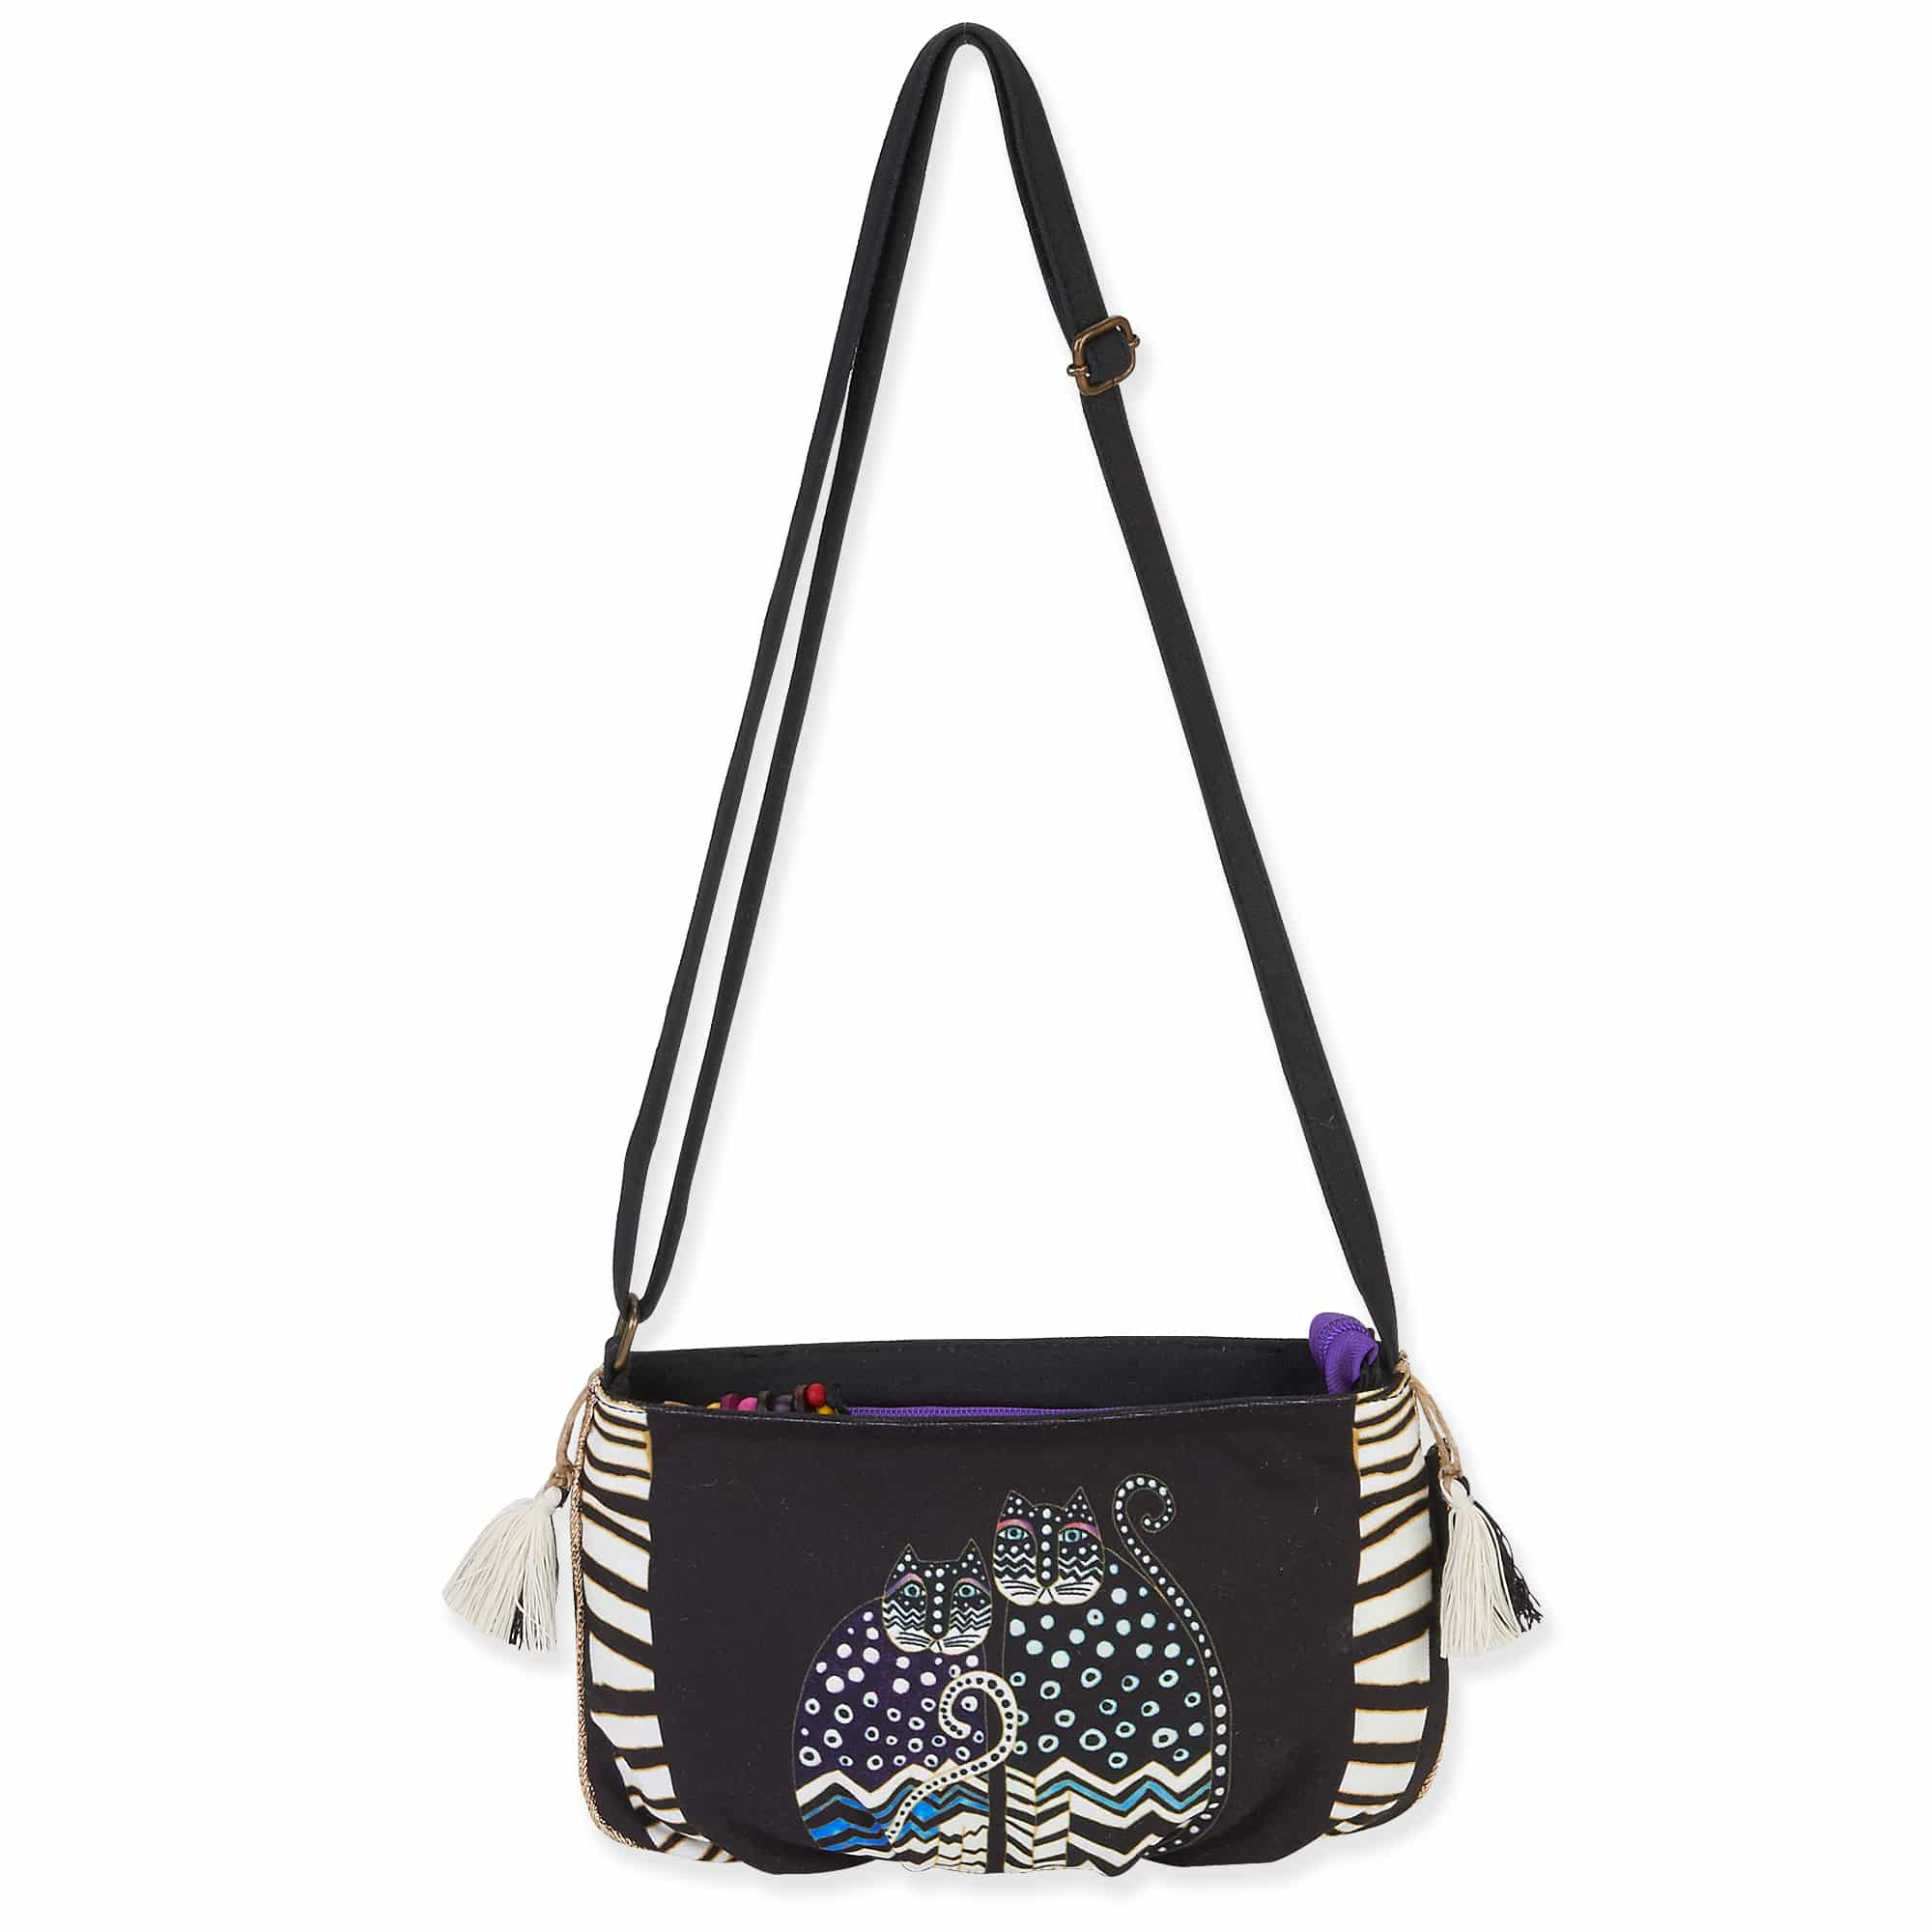 Polka Dot Cats Crossbody by Laurel Burch